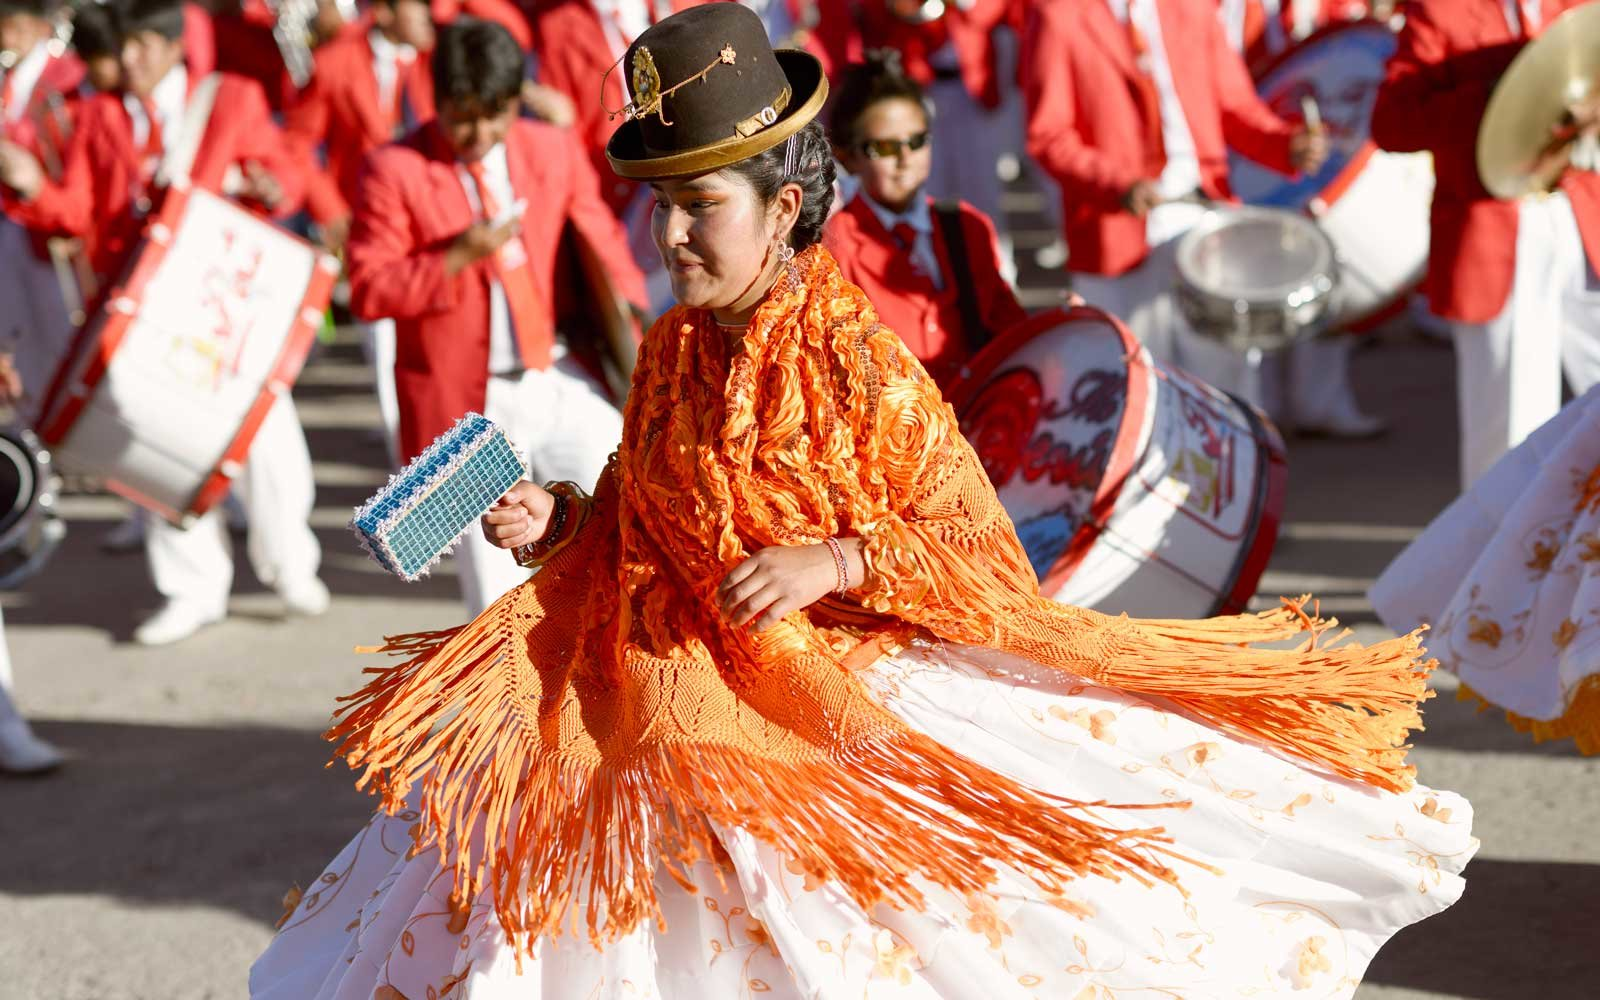 Aymara woman dancing at the Festival of the Virgin, Chucuito, Puno, Peru